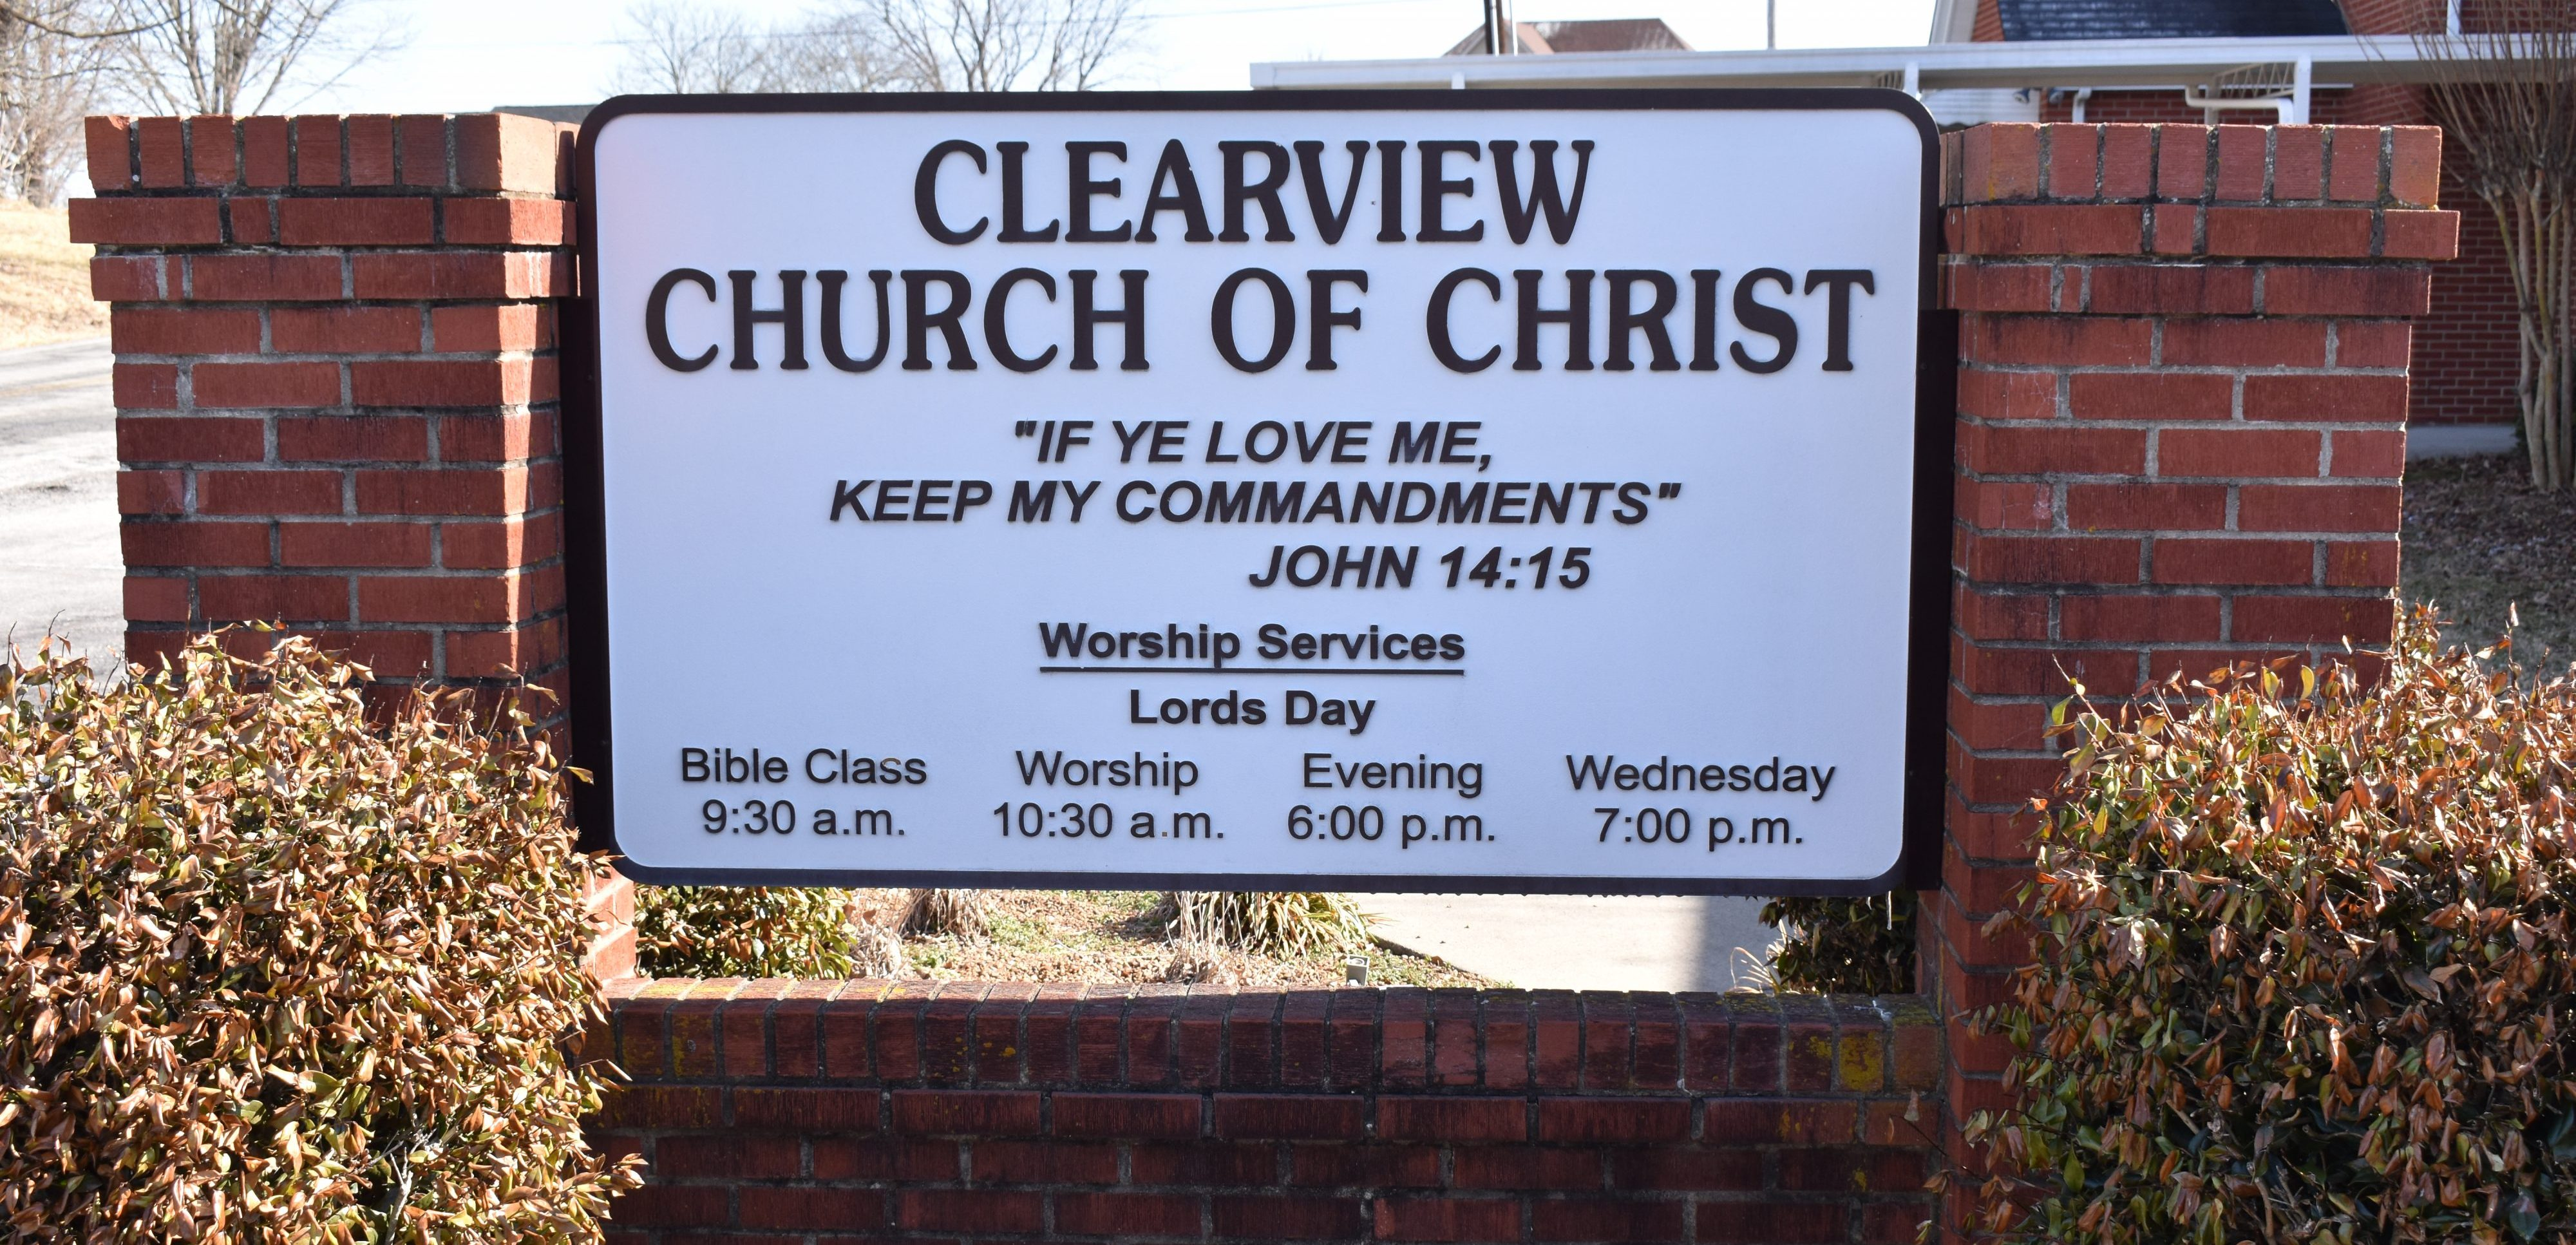 Clearview Church of Christ